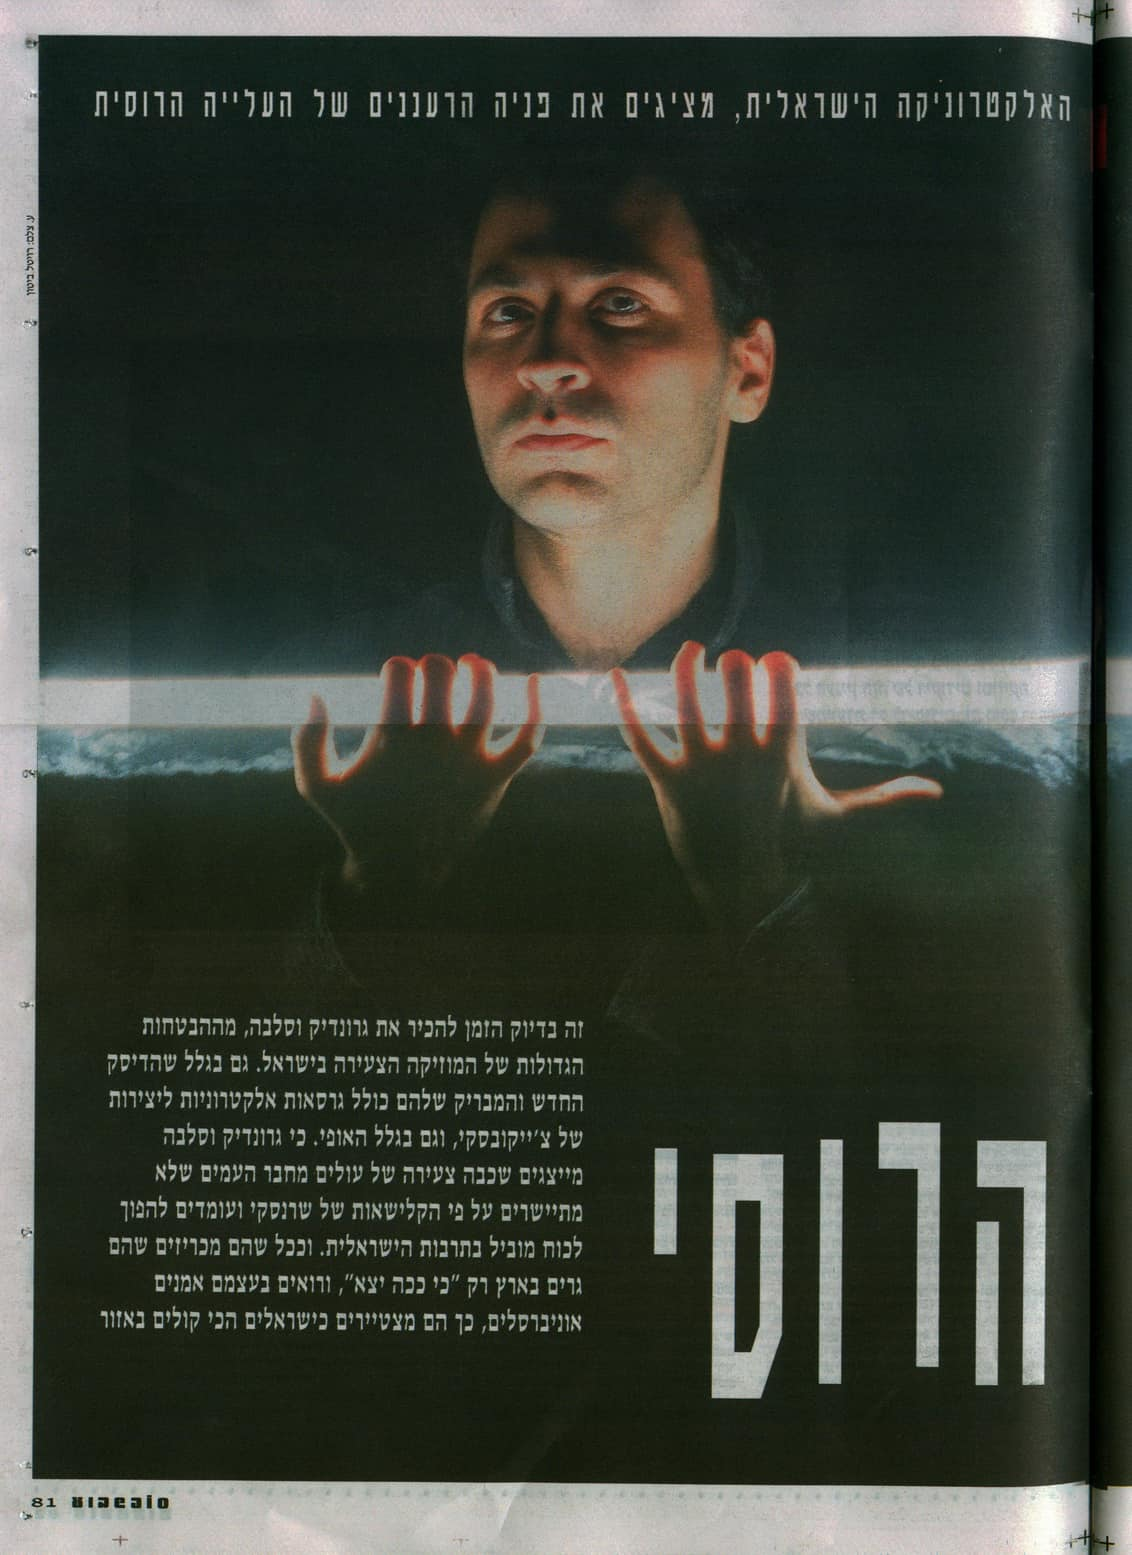 19 01 01 part2 - Cool Ha-Rusi, Maariv, interview with Grundik+Slava, 19.01.2001